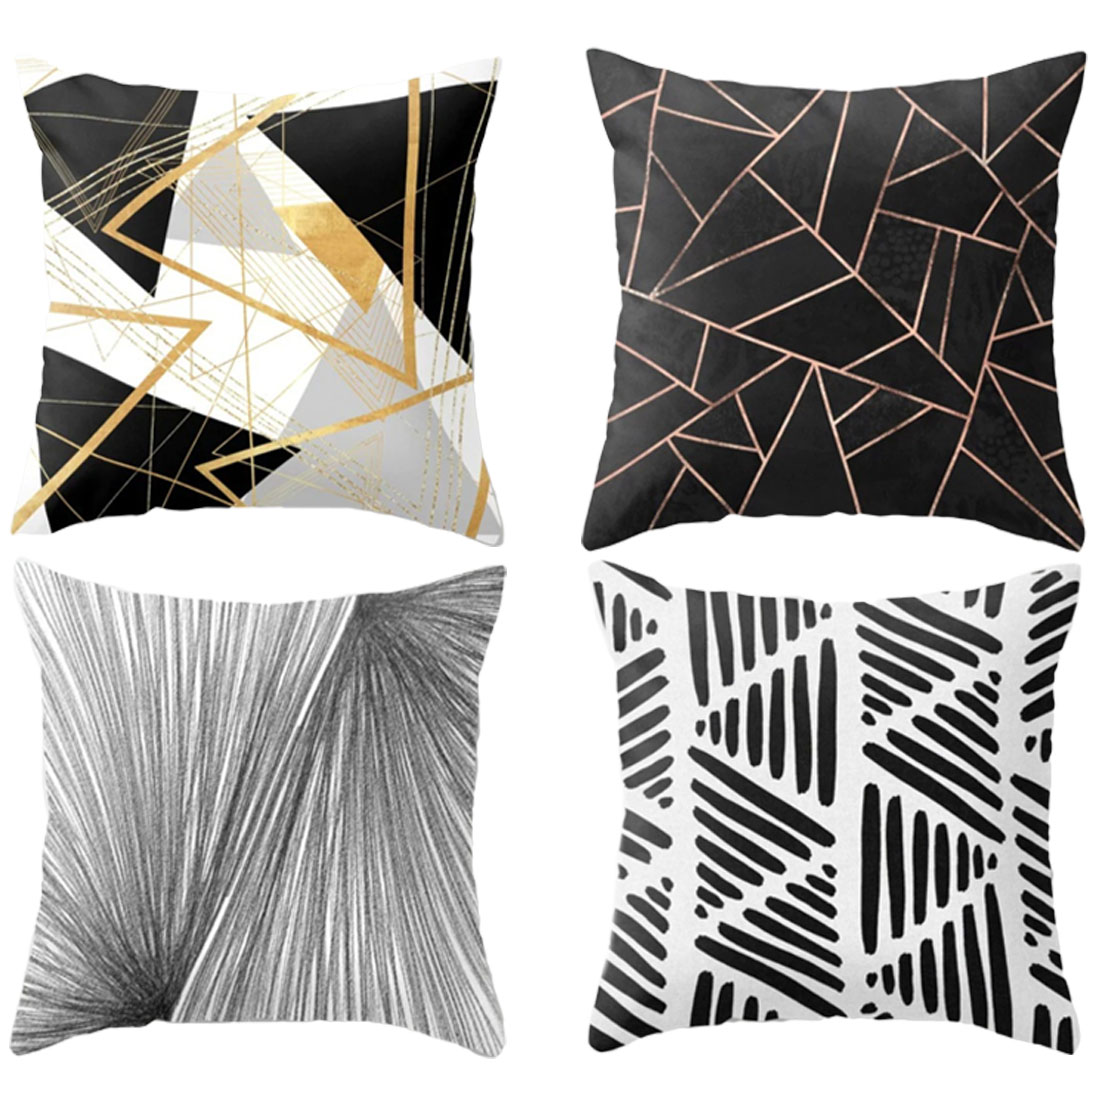 Colorful Pillow Case 45x45 Home Decor Cushion Cover Simple Geometric Throw Pillowcase Pillow Covers